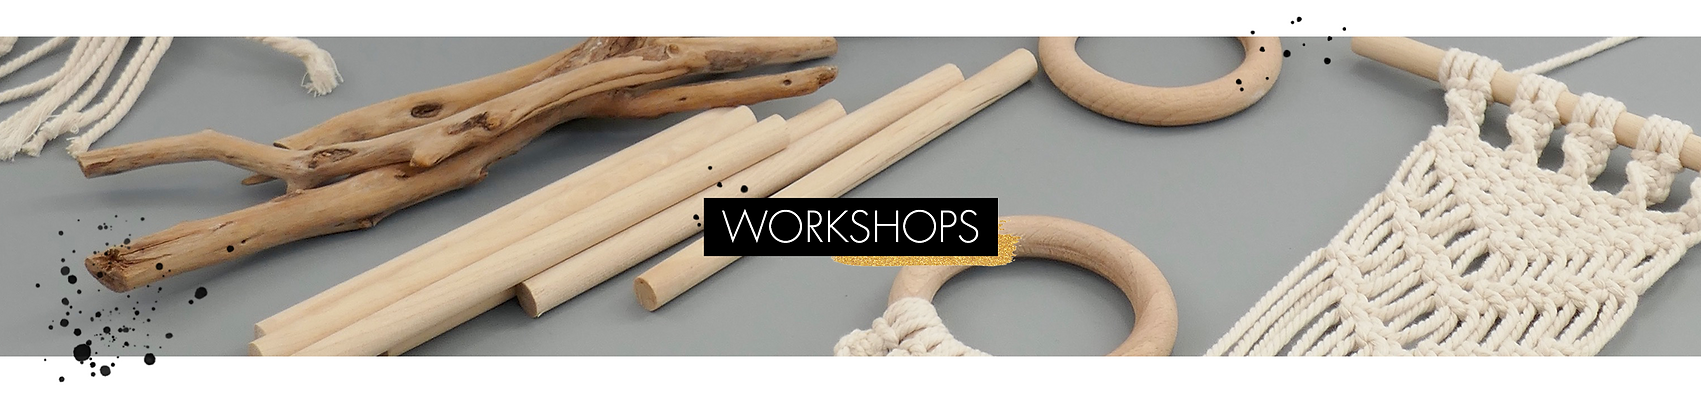 header workshops OK.png